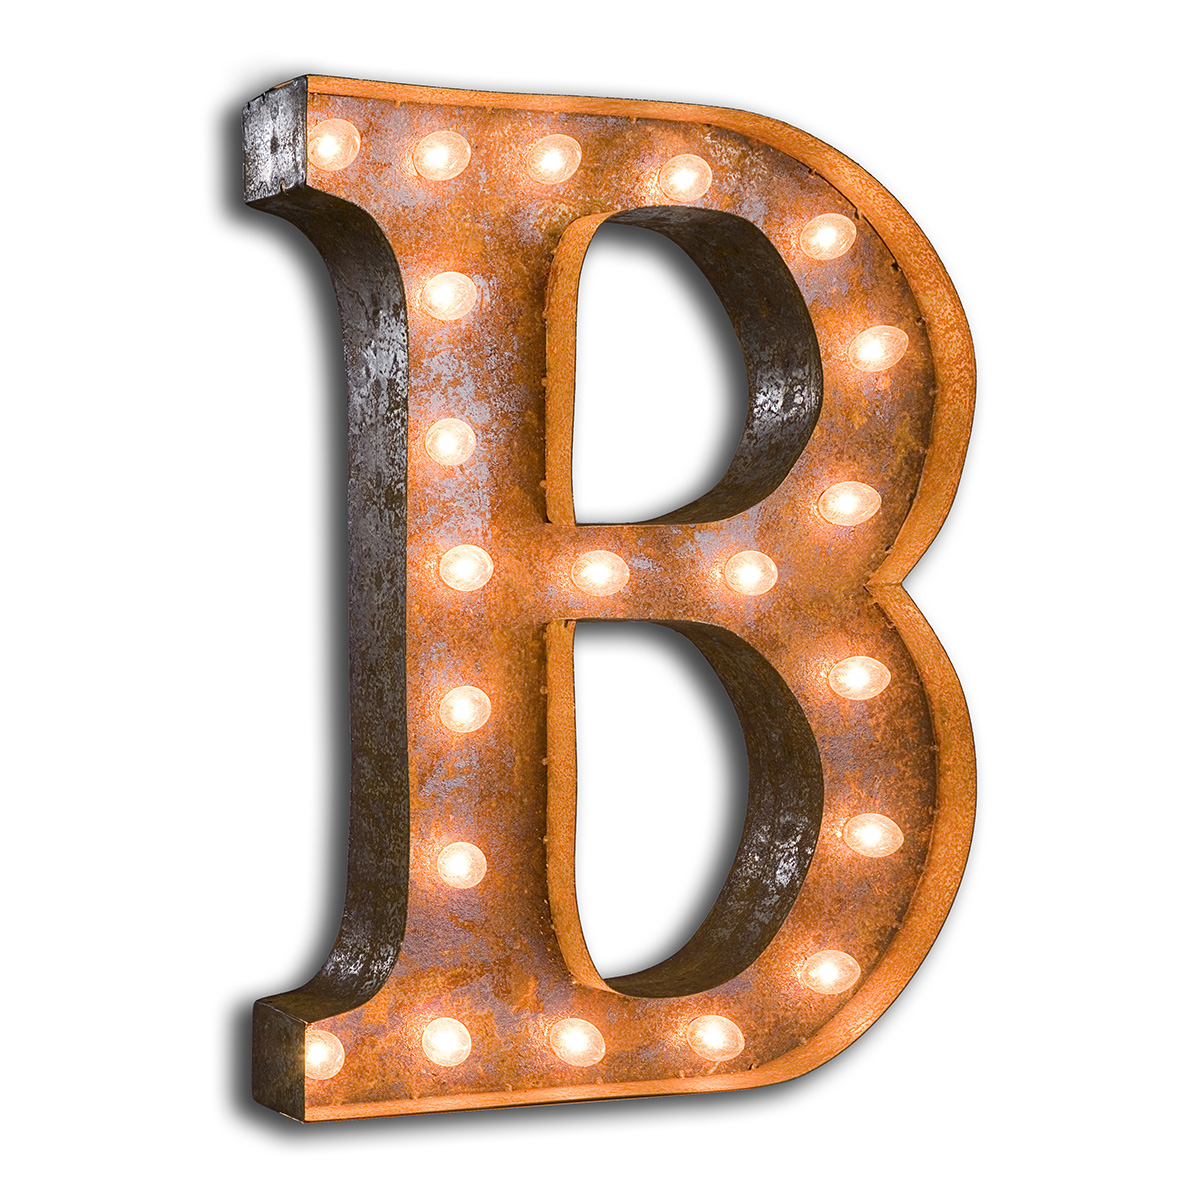 Decorative Letters With Lights Images | crazygallery.info